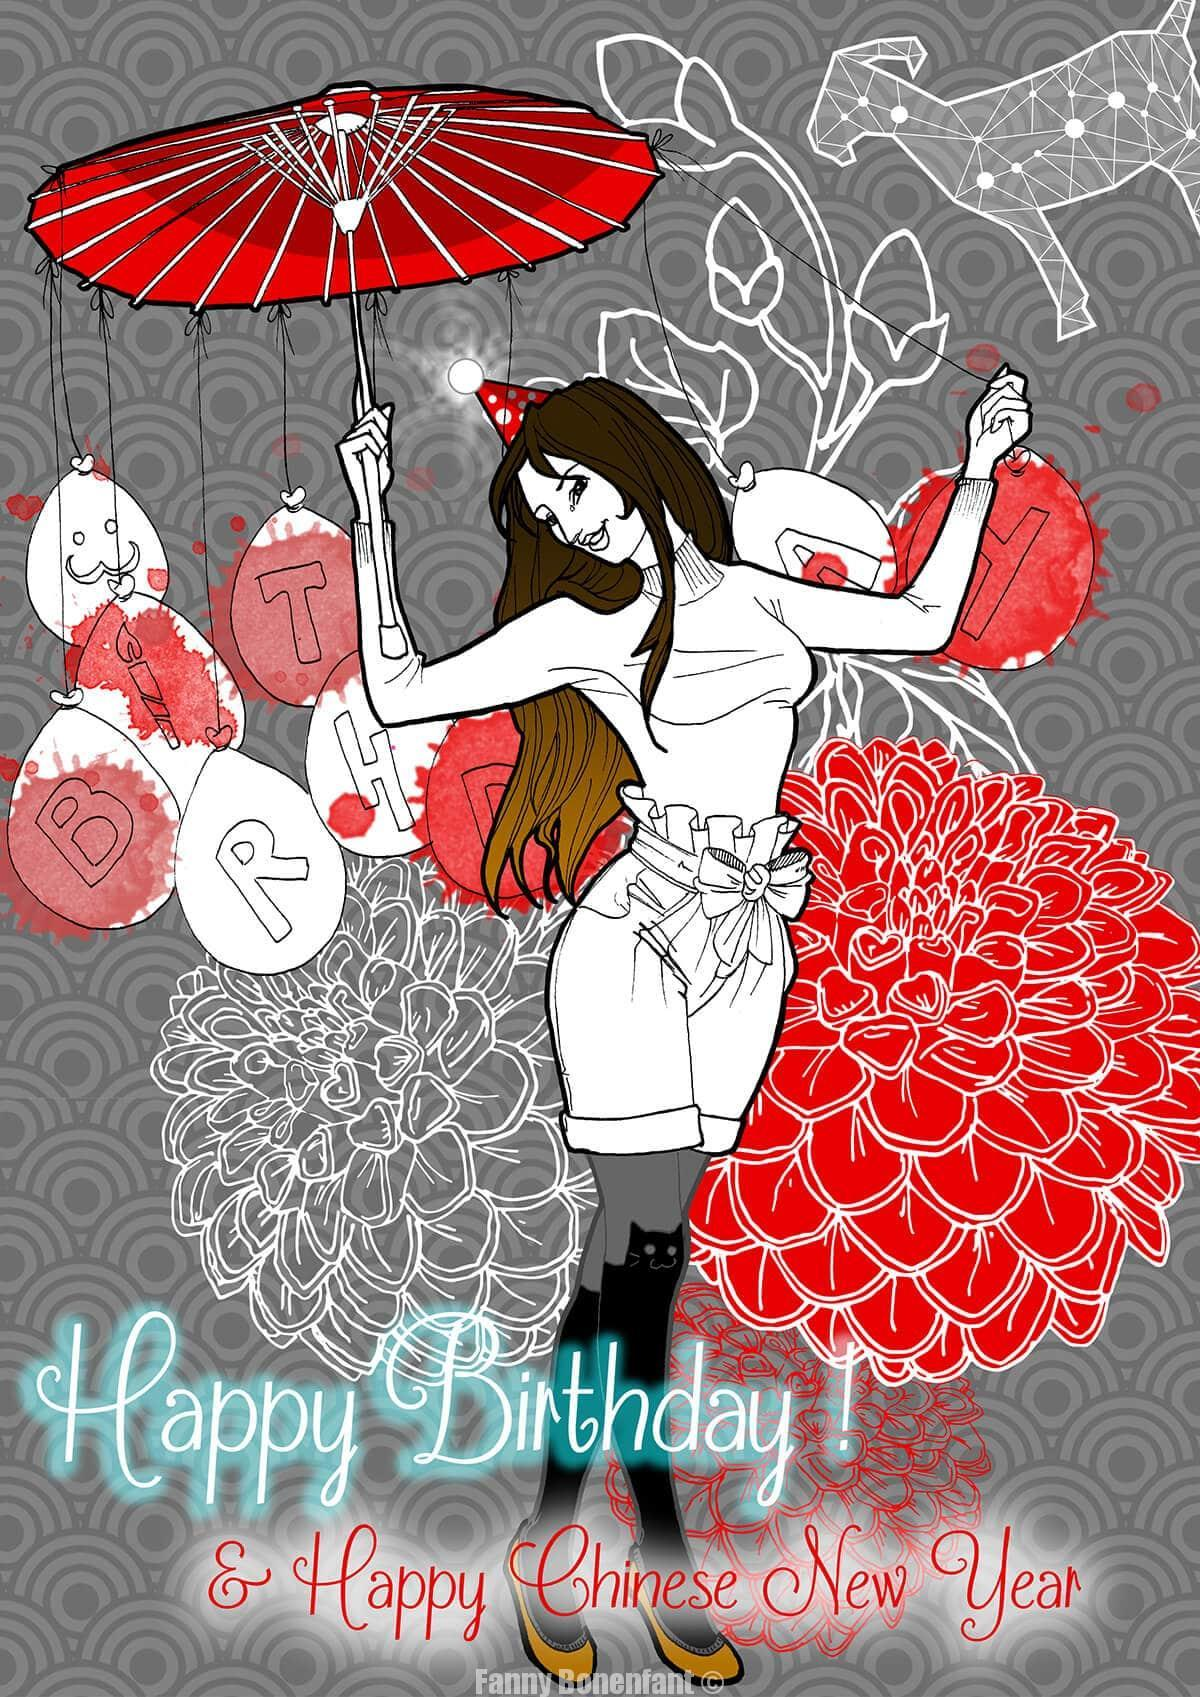 Happy Birthday & Happy Chinese New Year Fanny !